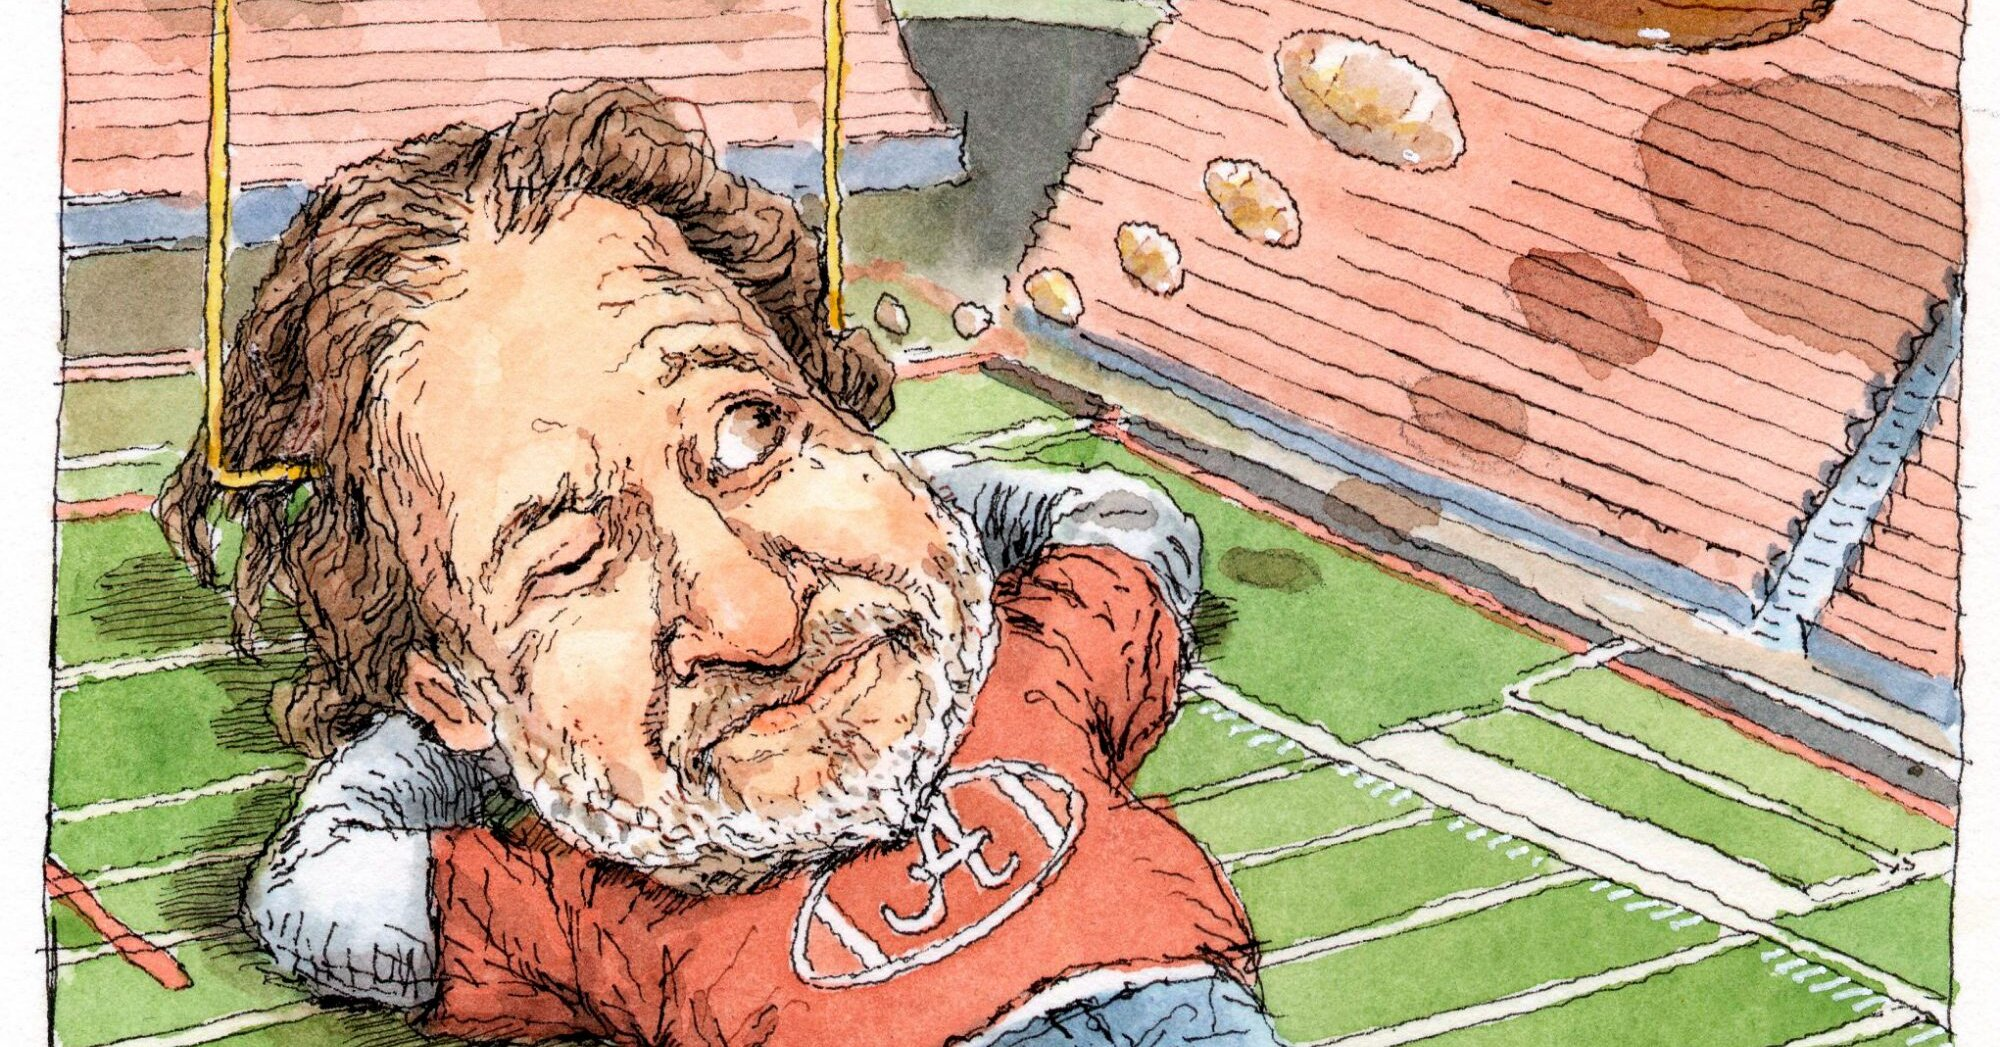 Rick Bragg on Fall Without Football in the South